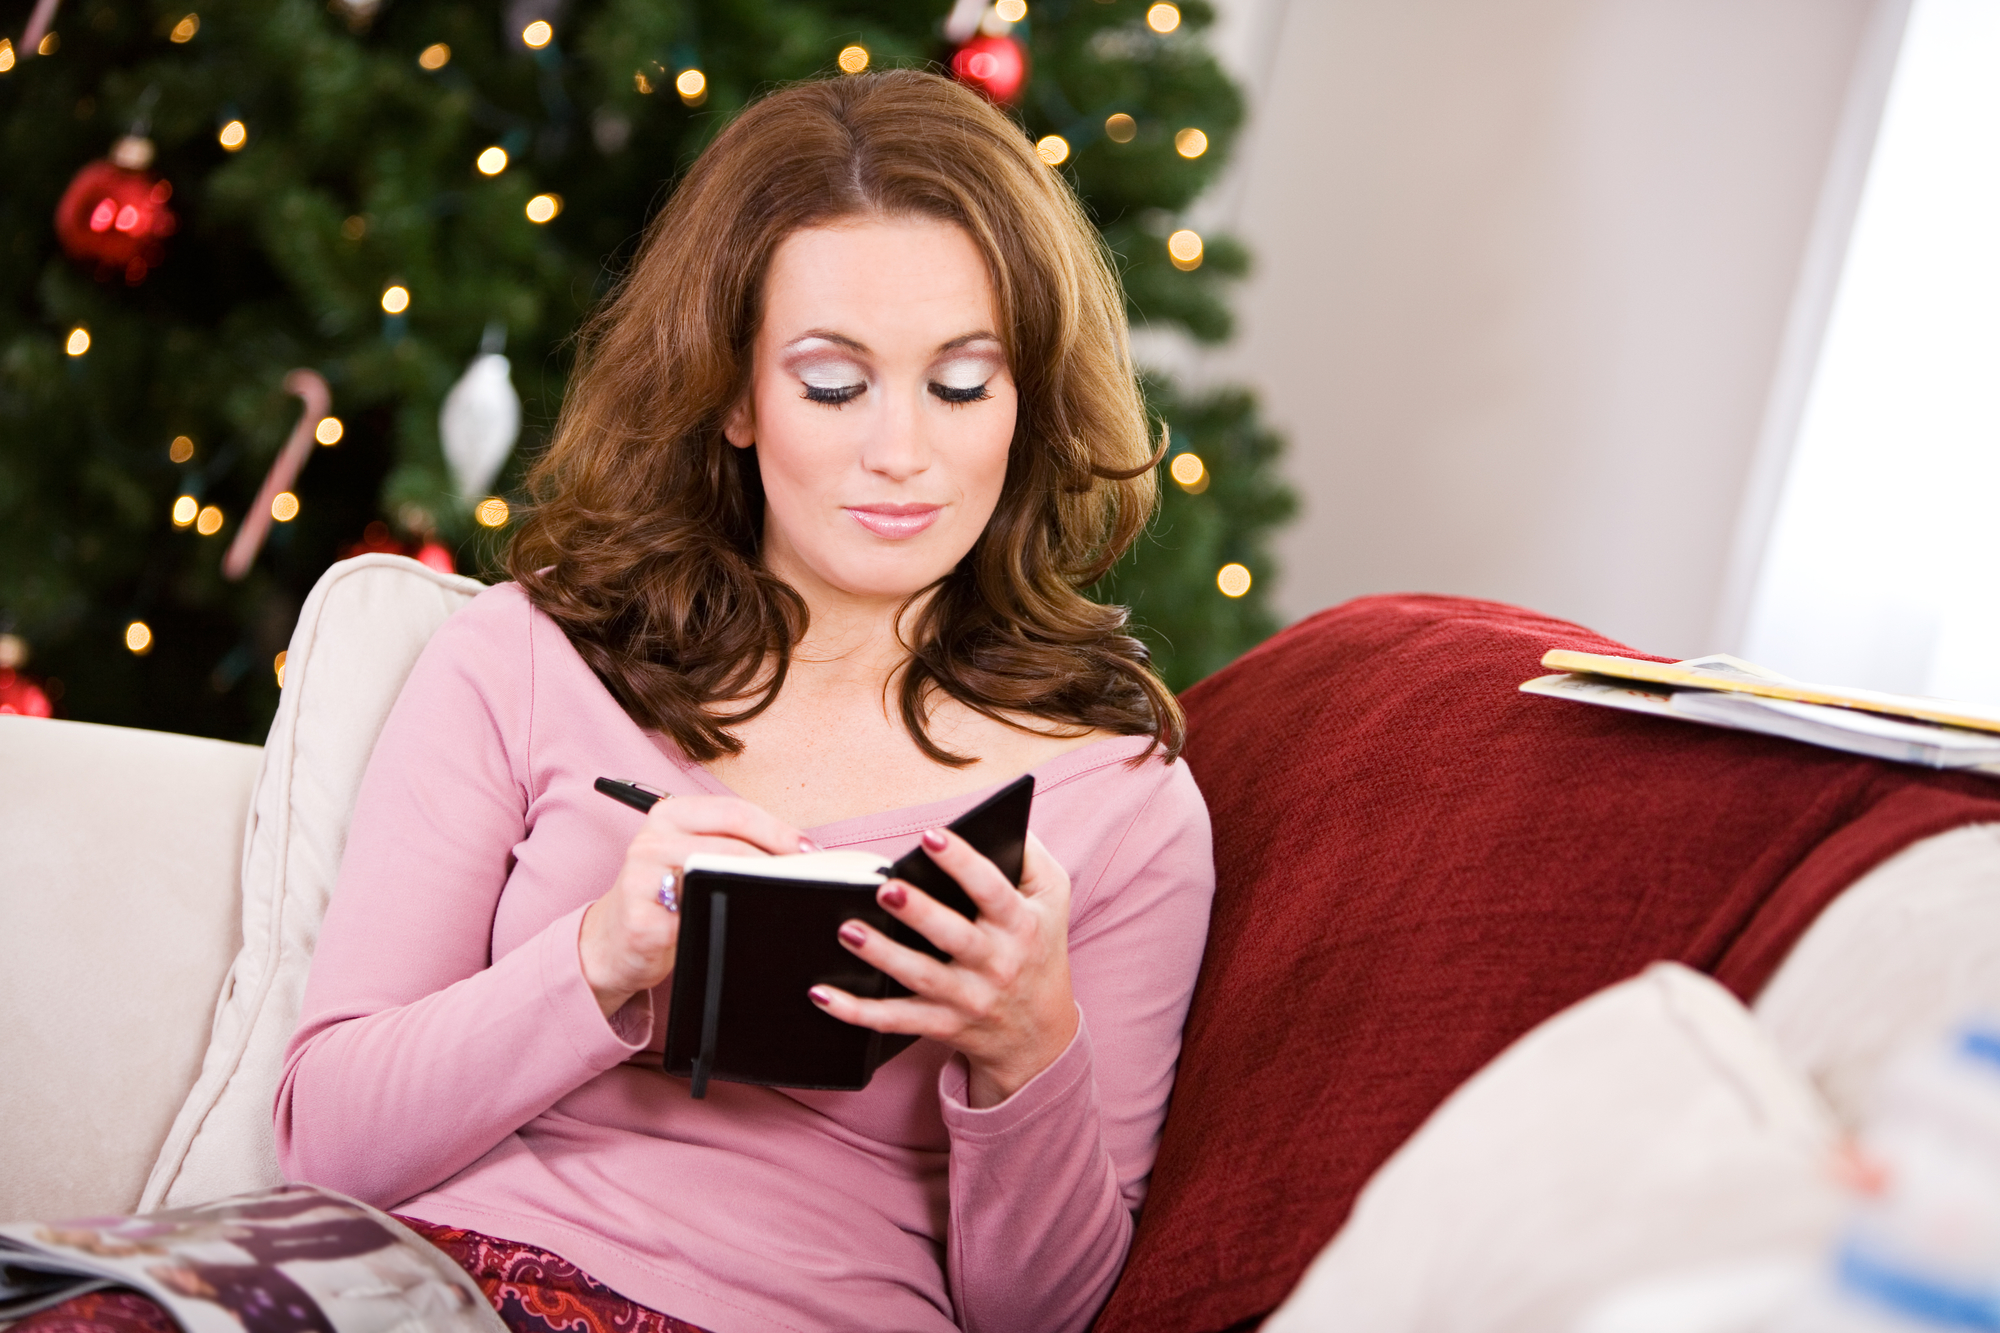 woman writing with a Christmas tree behind her